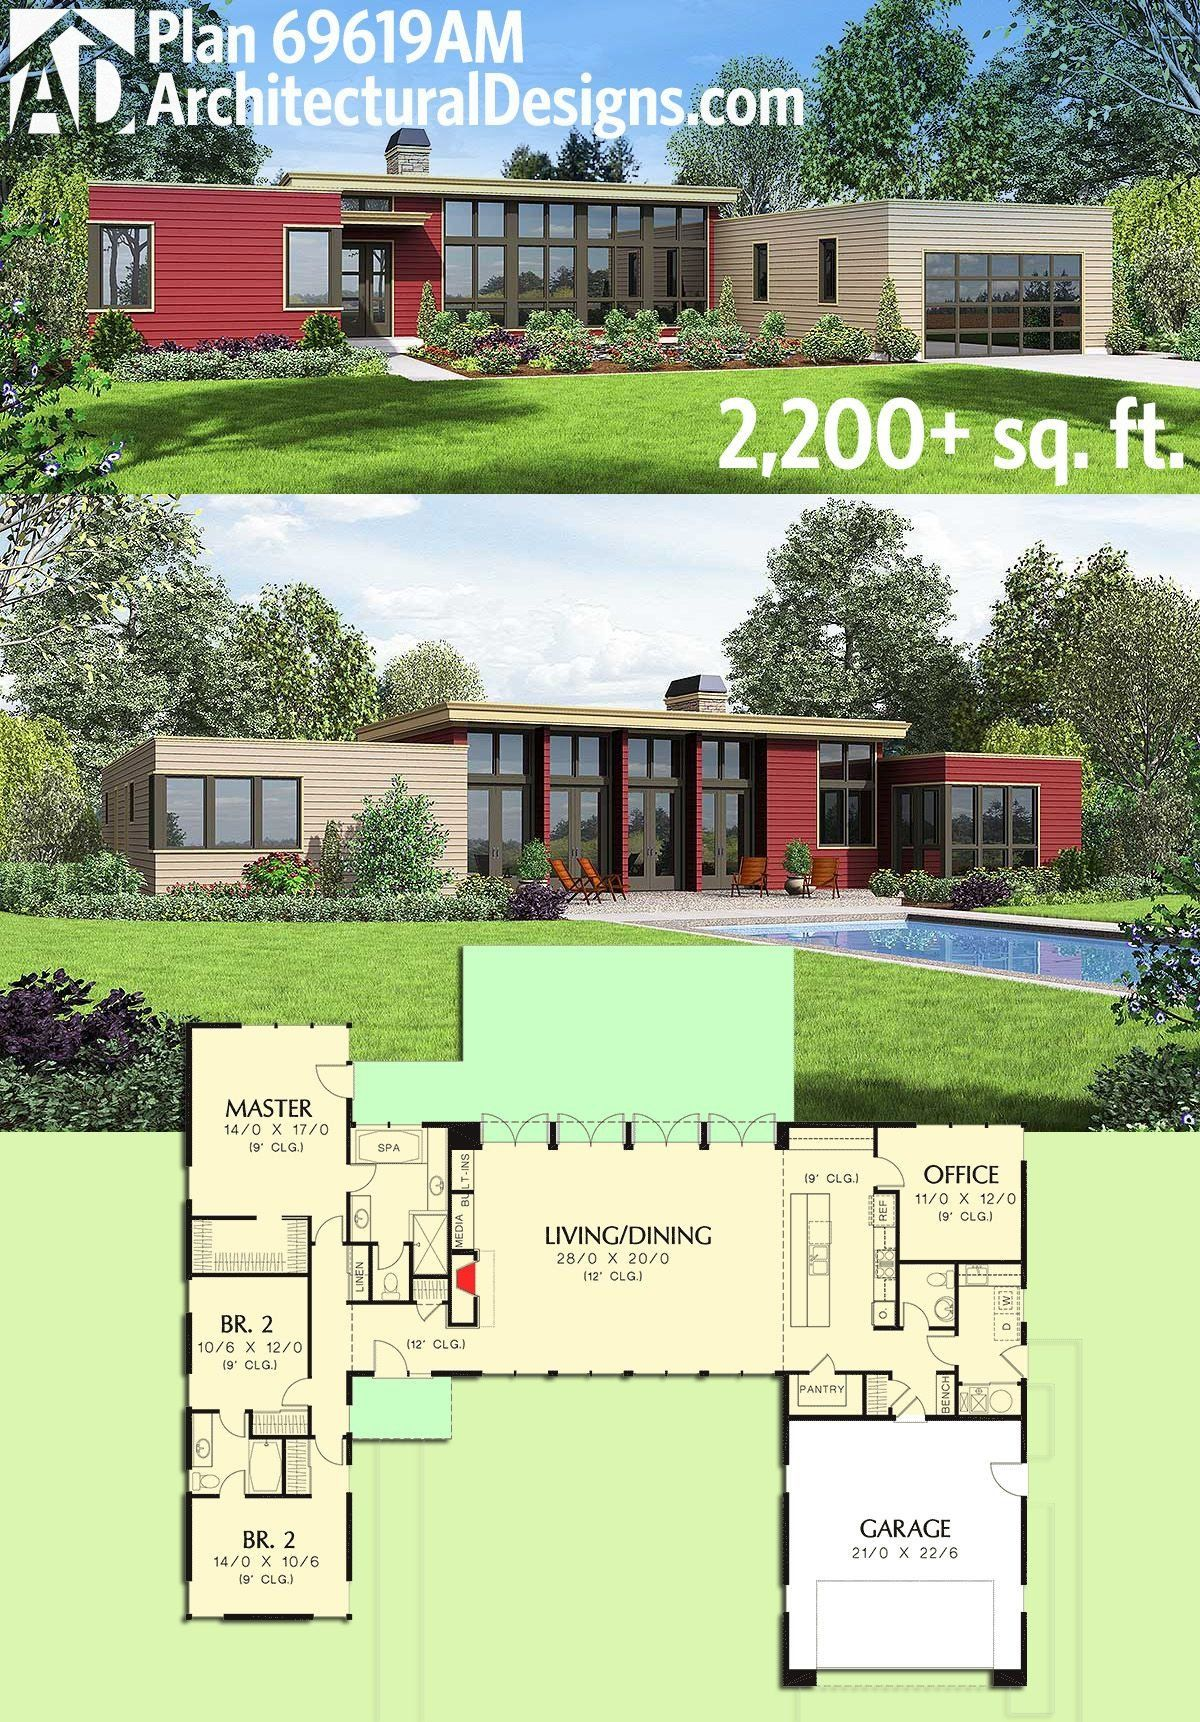 One Story Modern House Designs Plan Am 3 Bed Modern House Plan With Open Concept Container House Plans Modern House Plan House Plans One Story